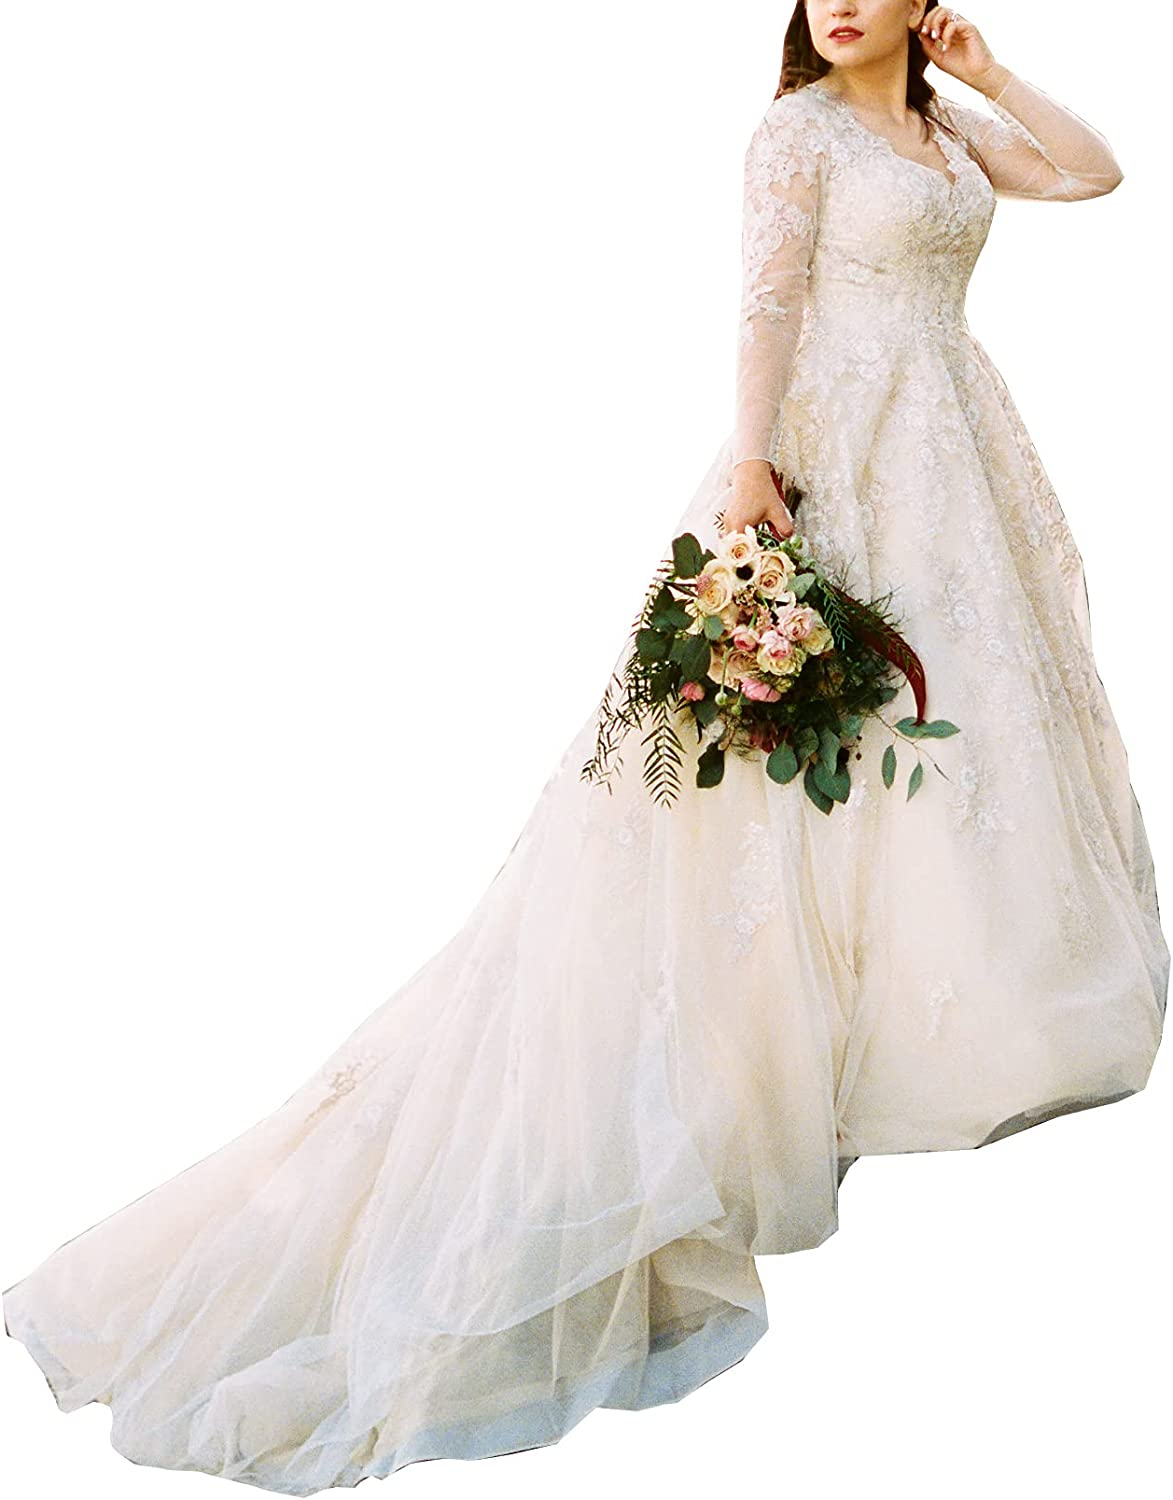 Melisa Wedding Dresses for Bride Plus Size with Train A-line Long Sleeves Sequins Lace Beach Bridal Ball Gowns